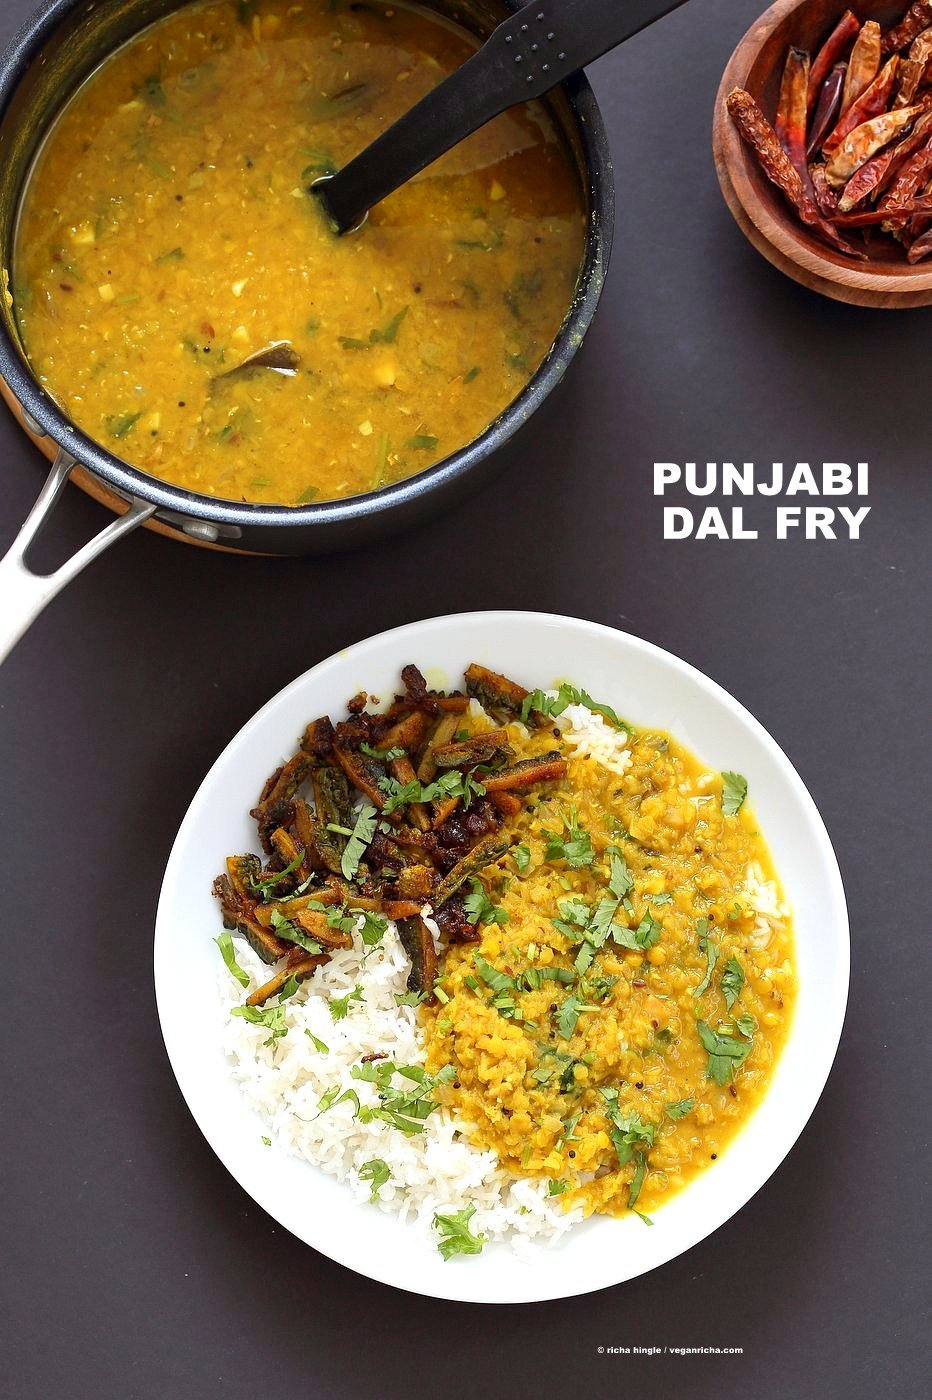 Punjabi dal fry recipe vegan richa punjabi dal fry recipe easy dal fry with whole spices and garam masala lentil forumfinder Gallery